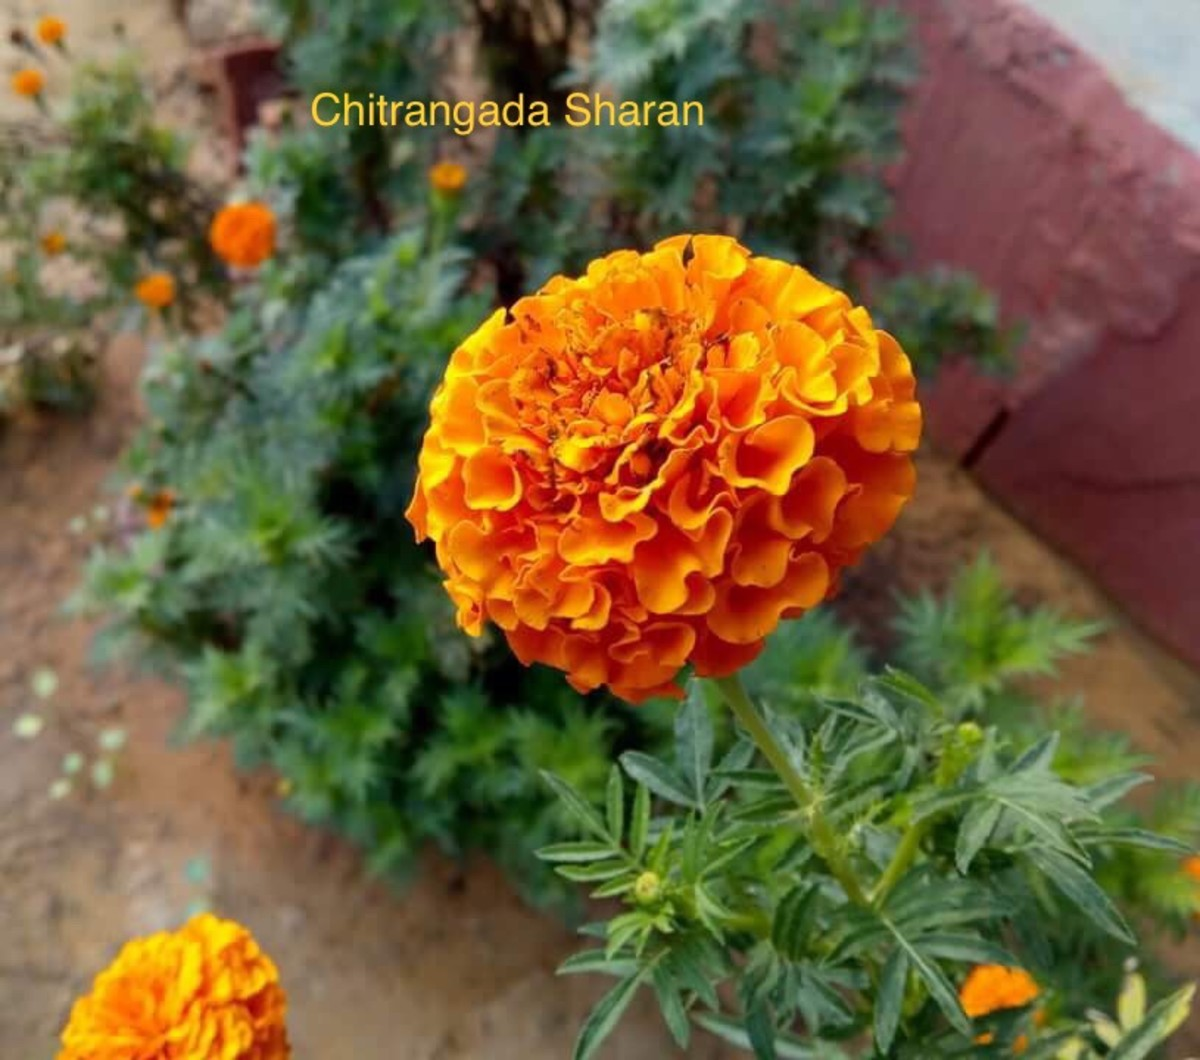 The Sunshine yellow of the Marigold